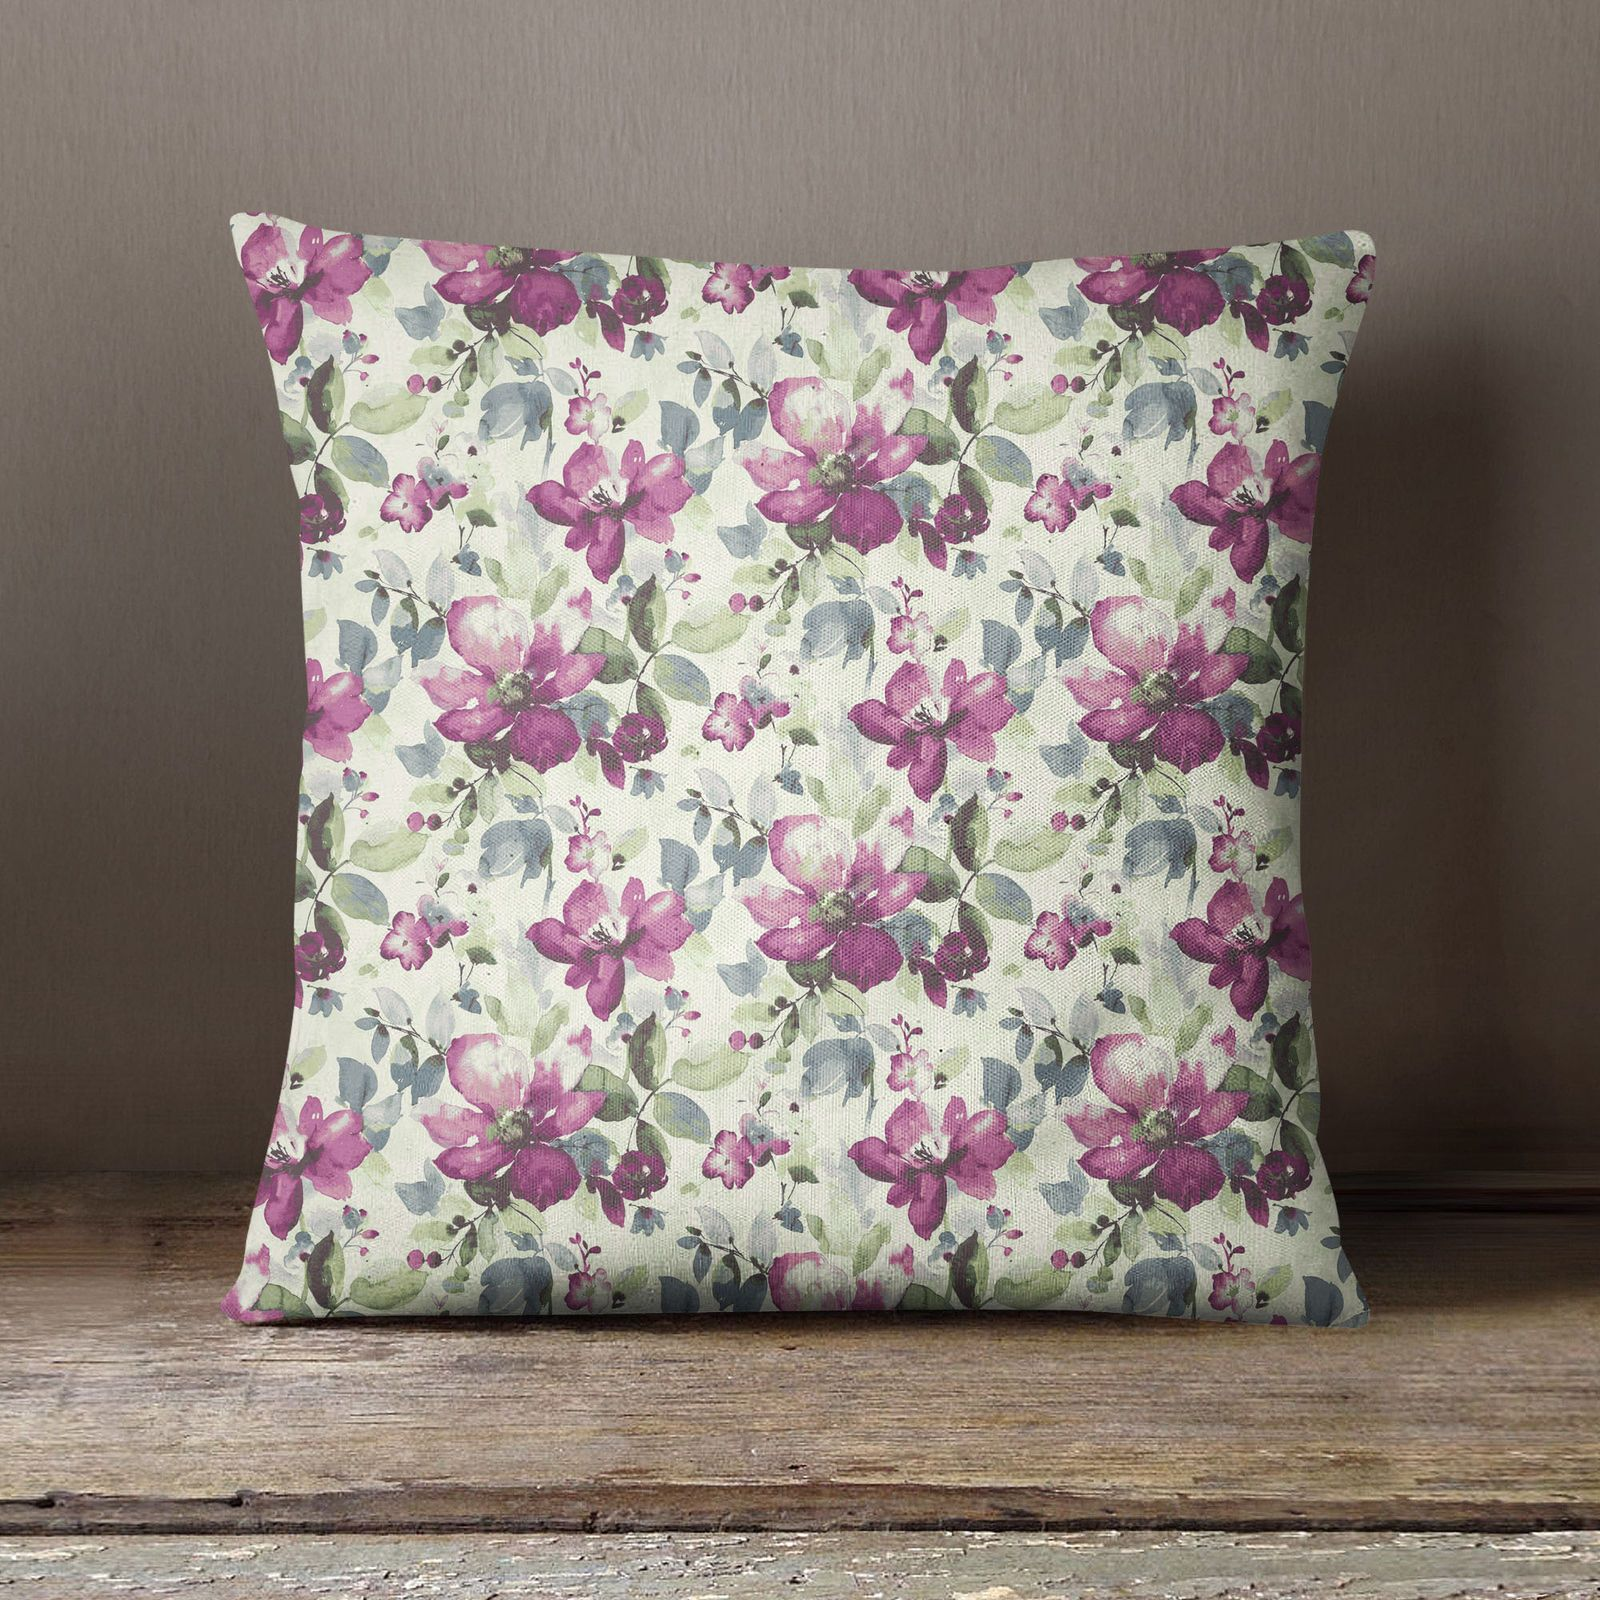 Ssassy floral printed plum cushion cover decorative pillow cover